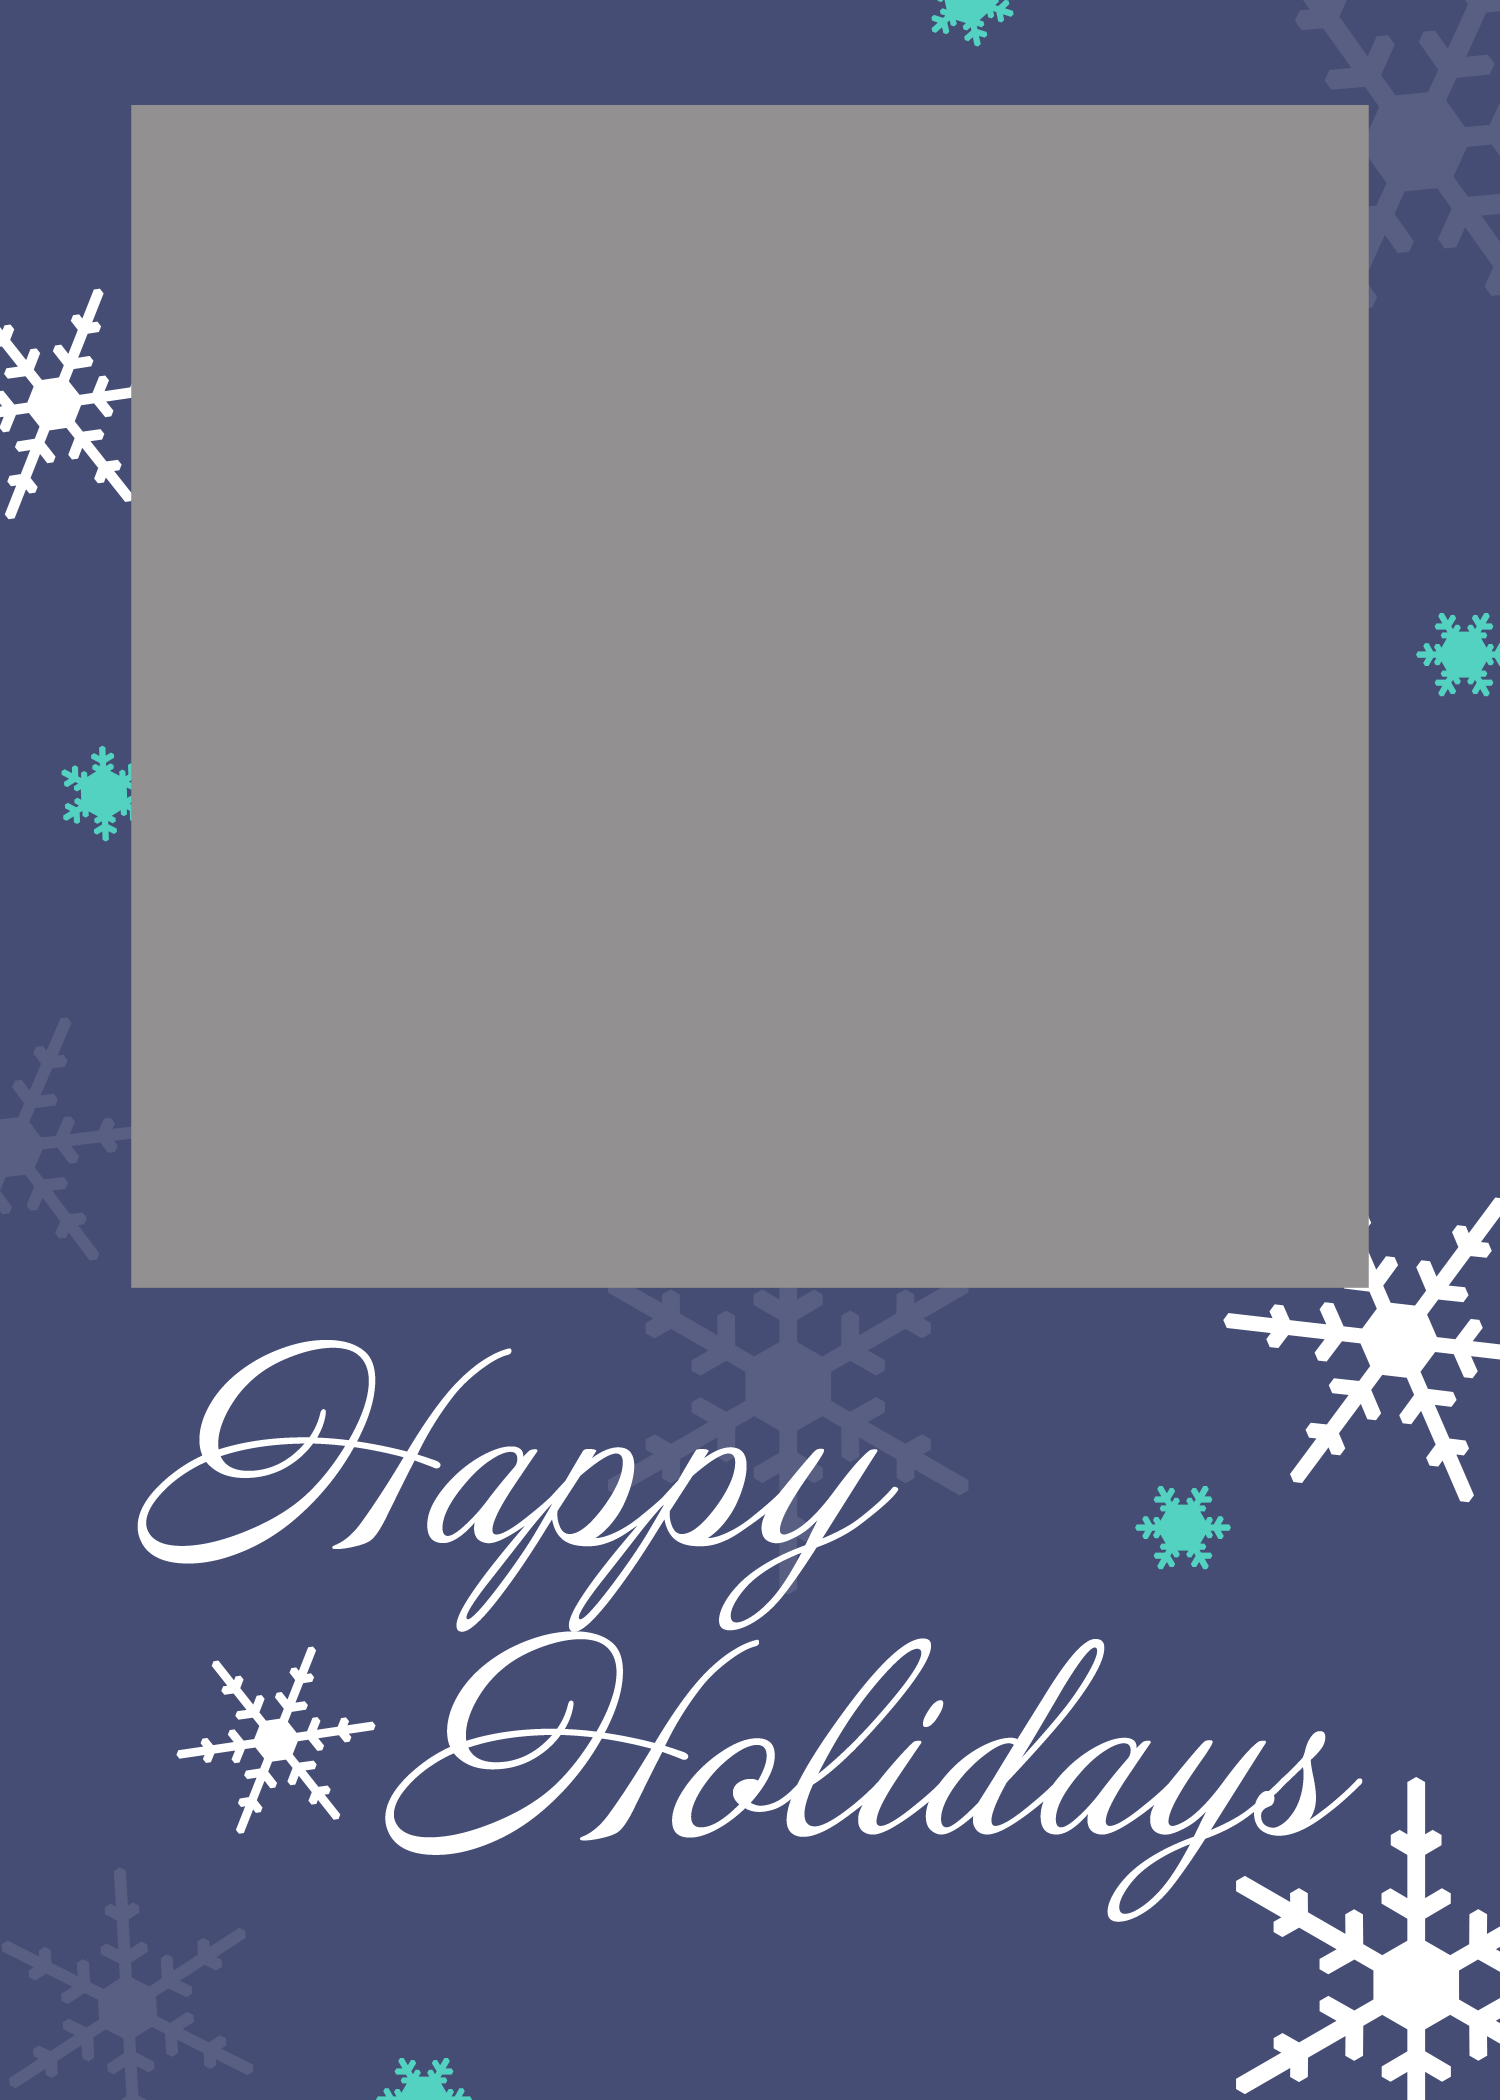 Sample, Example & Format Templates: Free Christmas Card Templates.